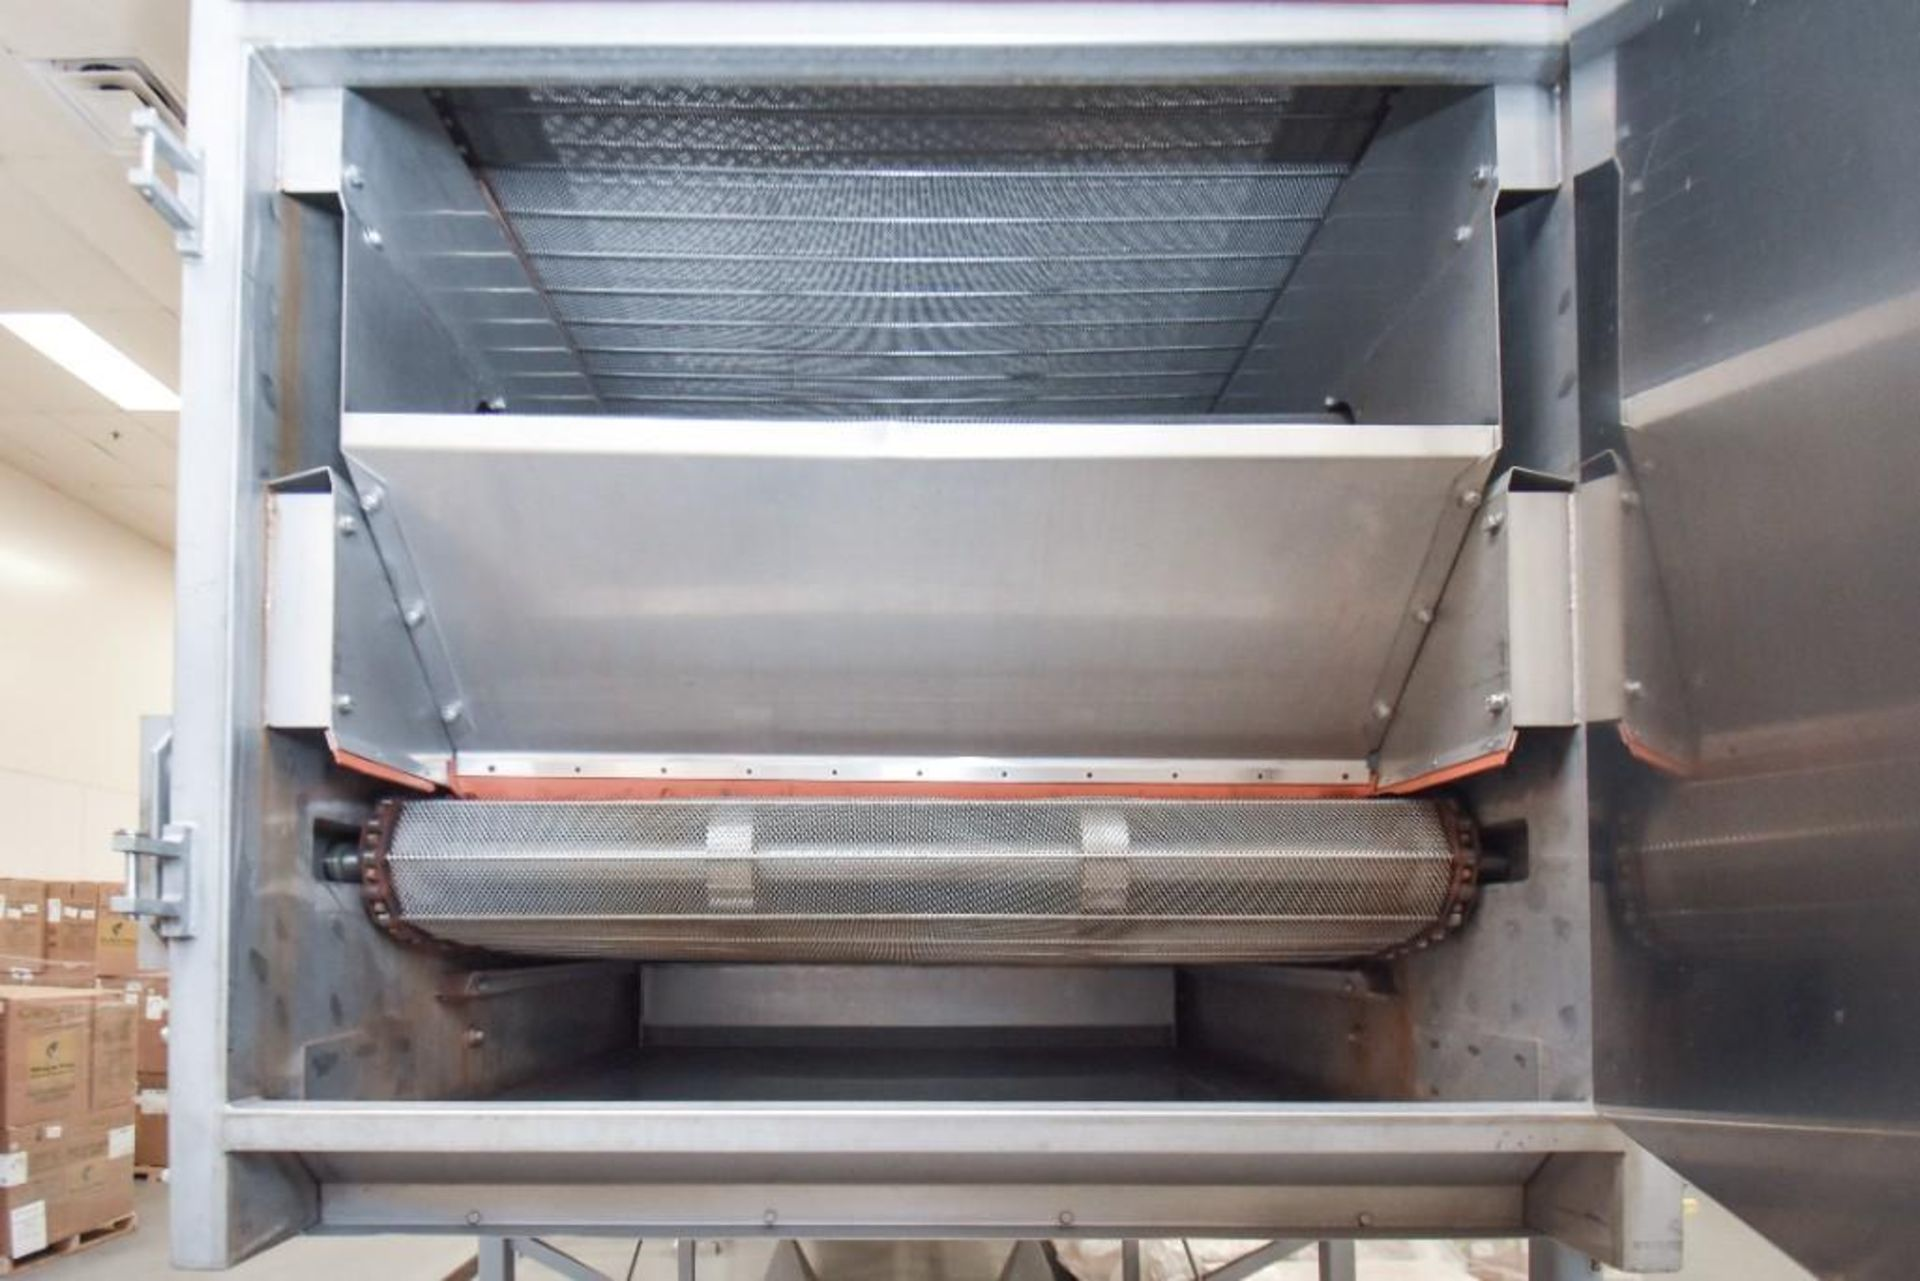 Wenger Dryer Oven #1 4800 - Image 4 of 8